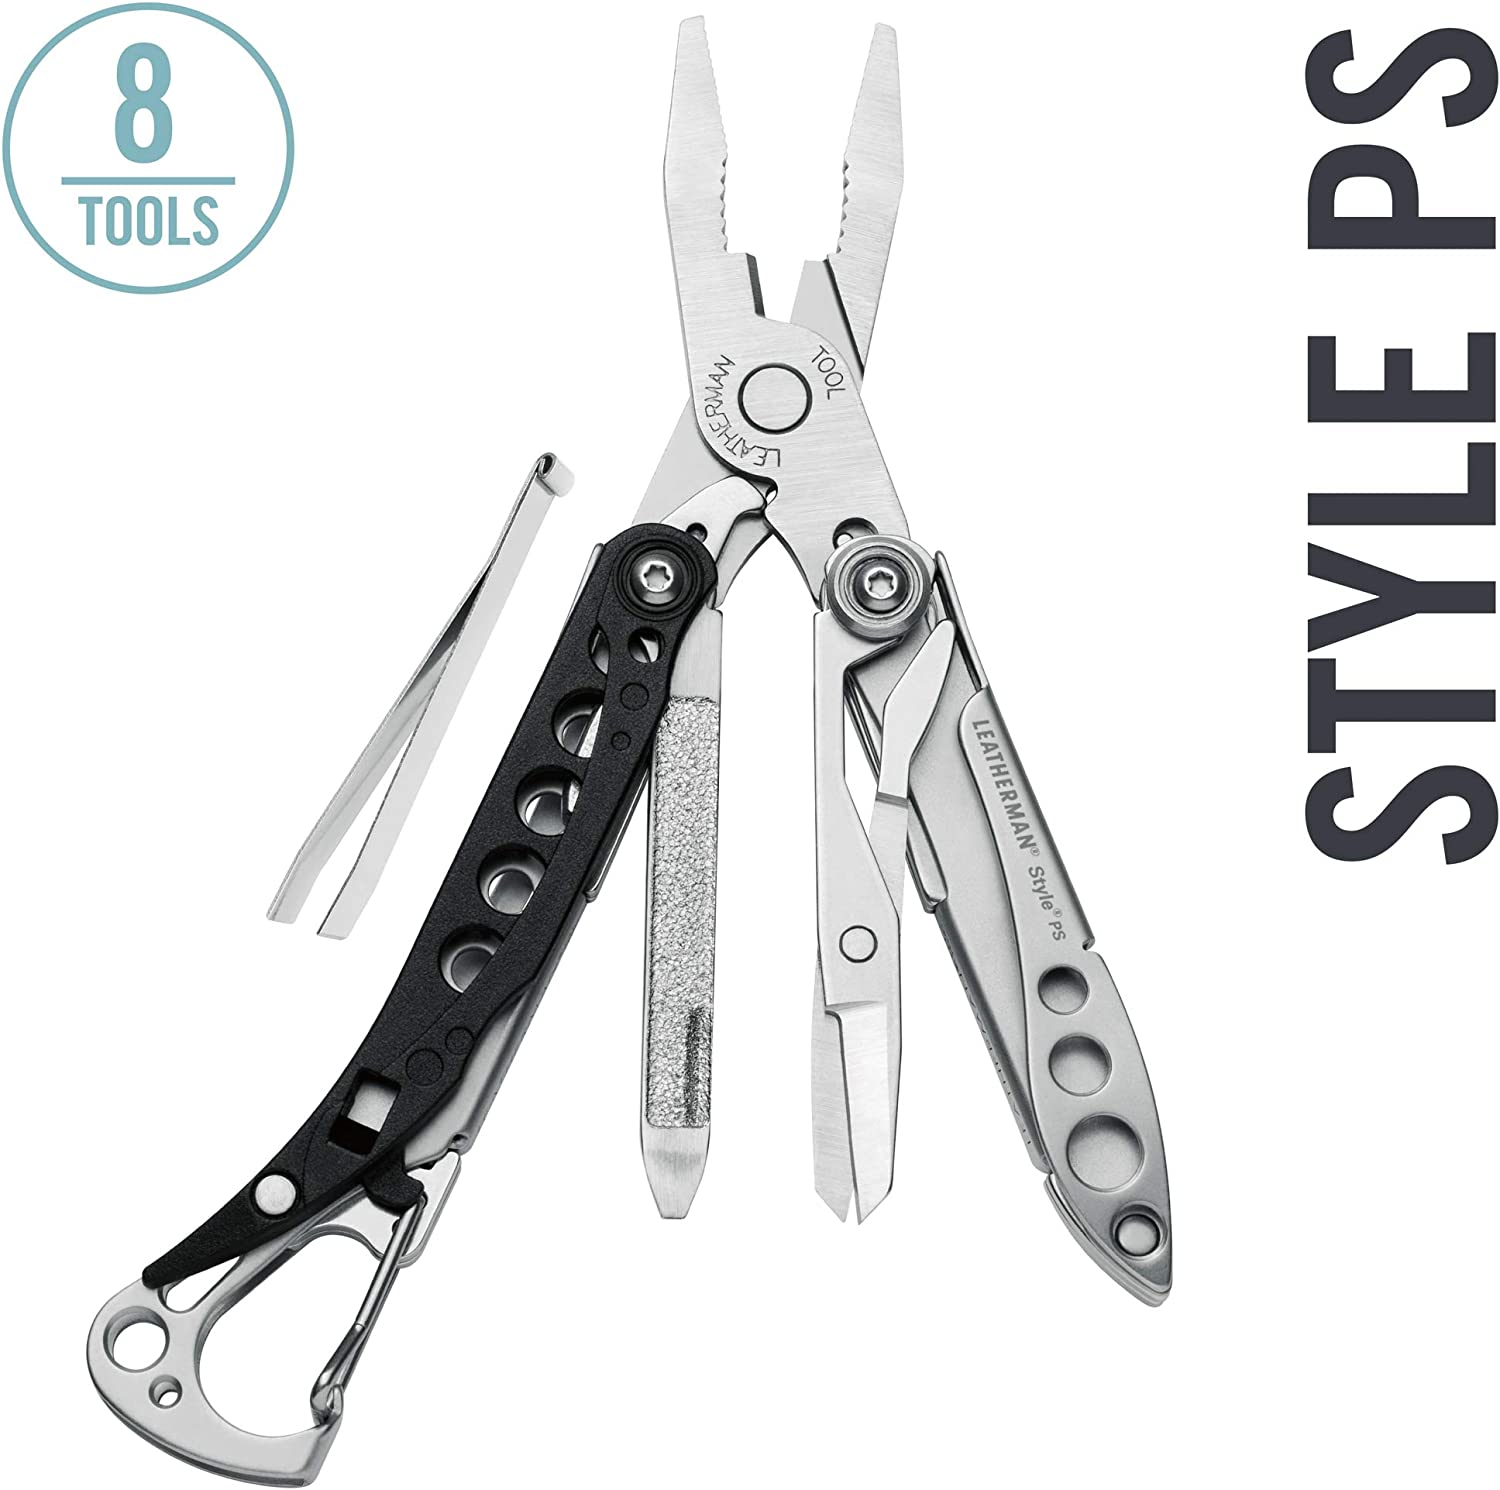 2. Leatherman Style PS Multi-Tool